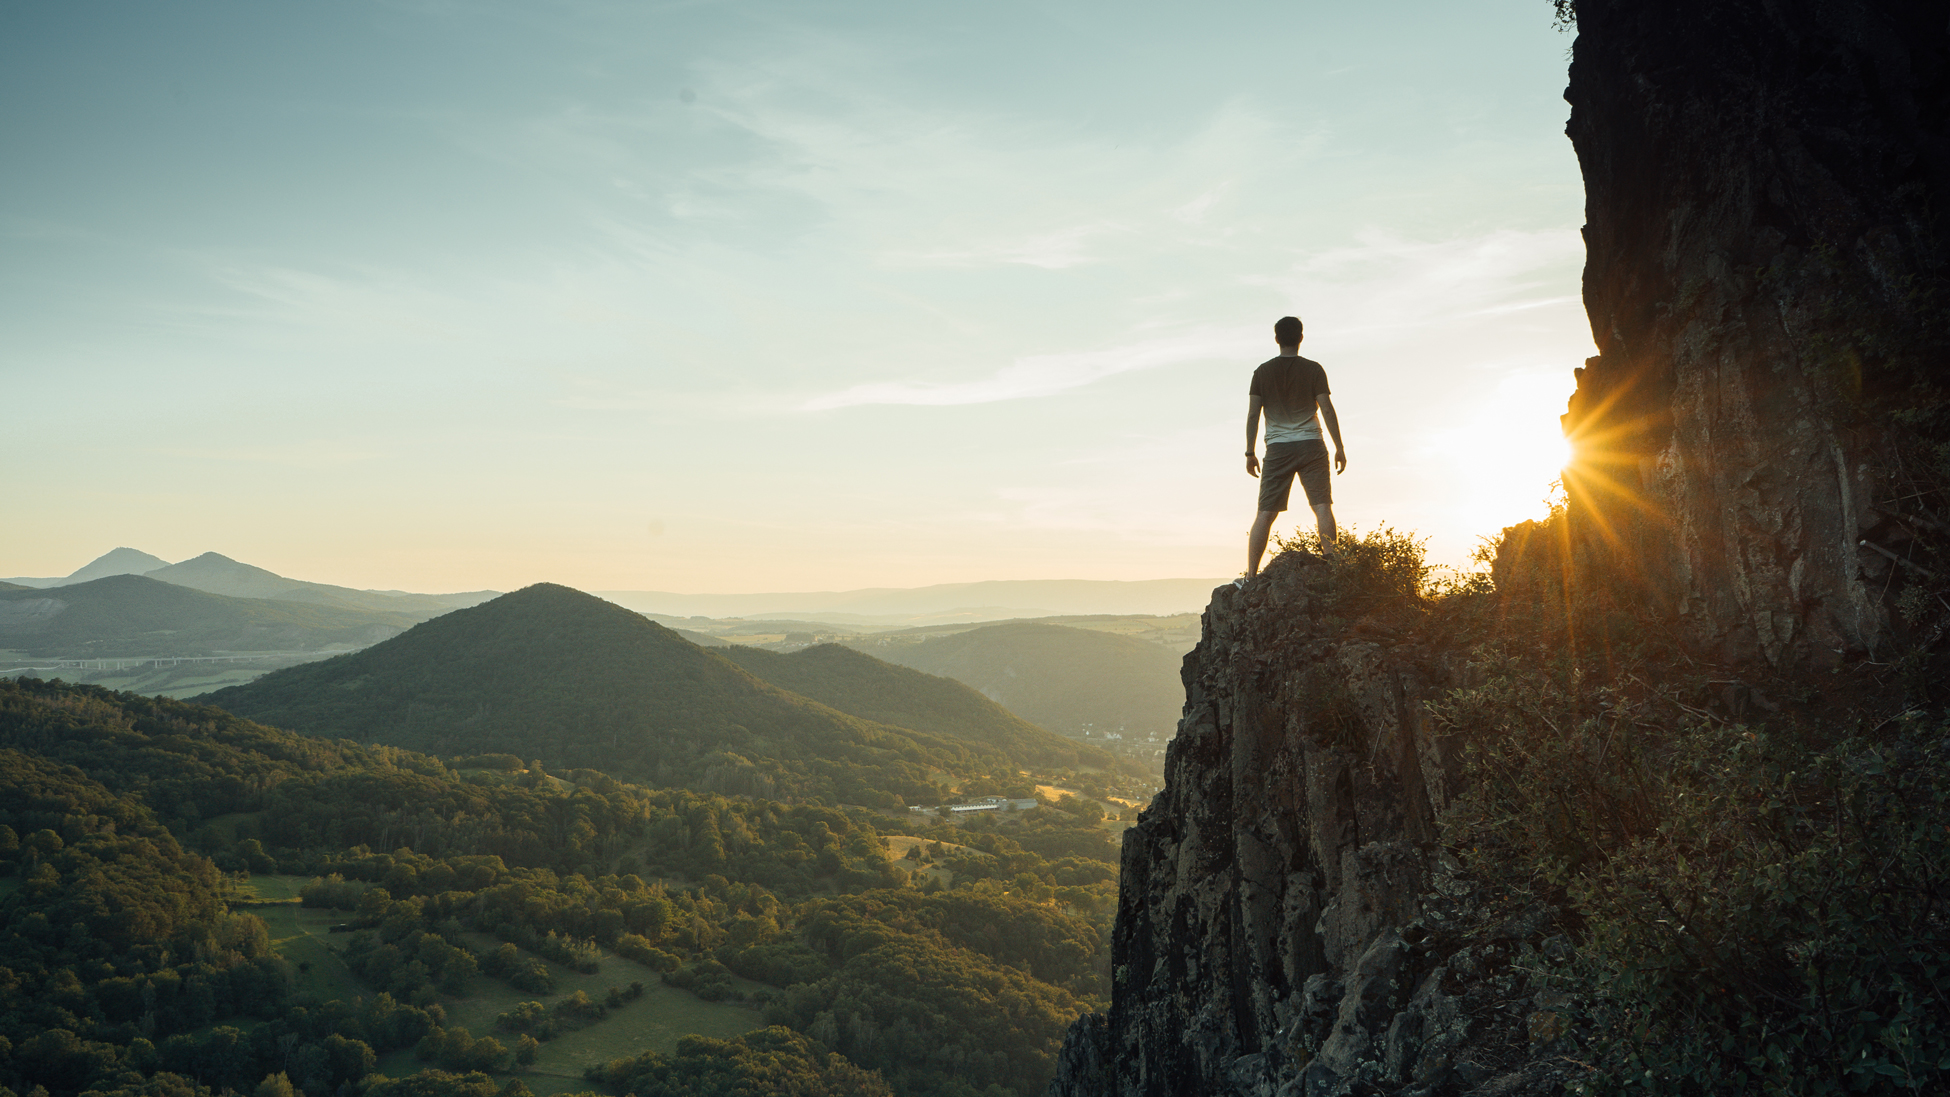 man standing on cliff overlooking valley with sun setting in background